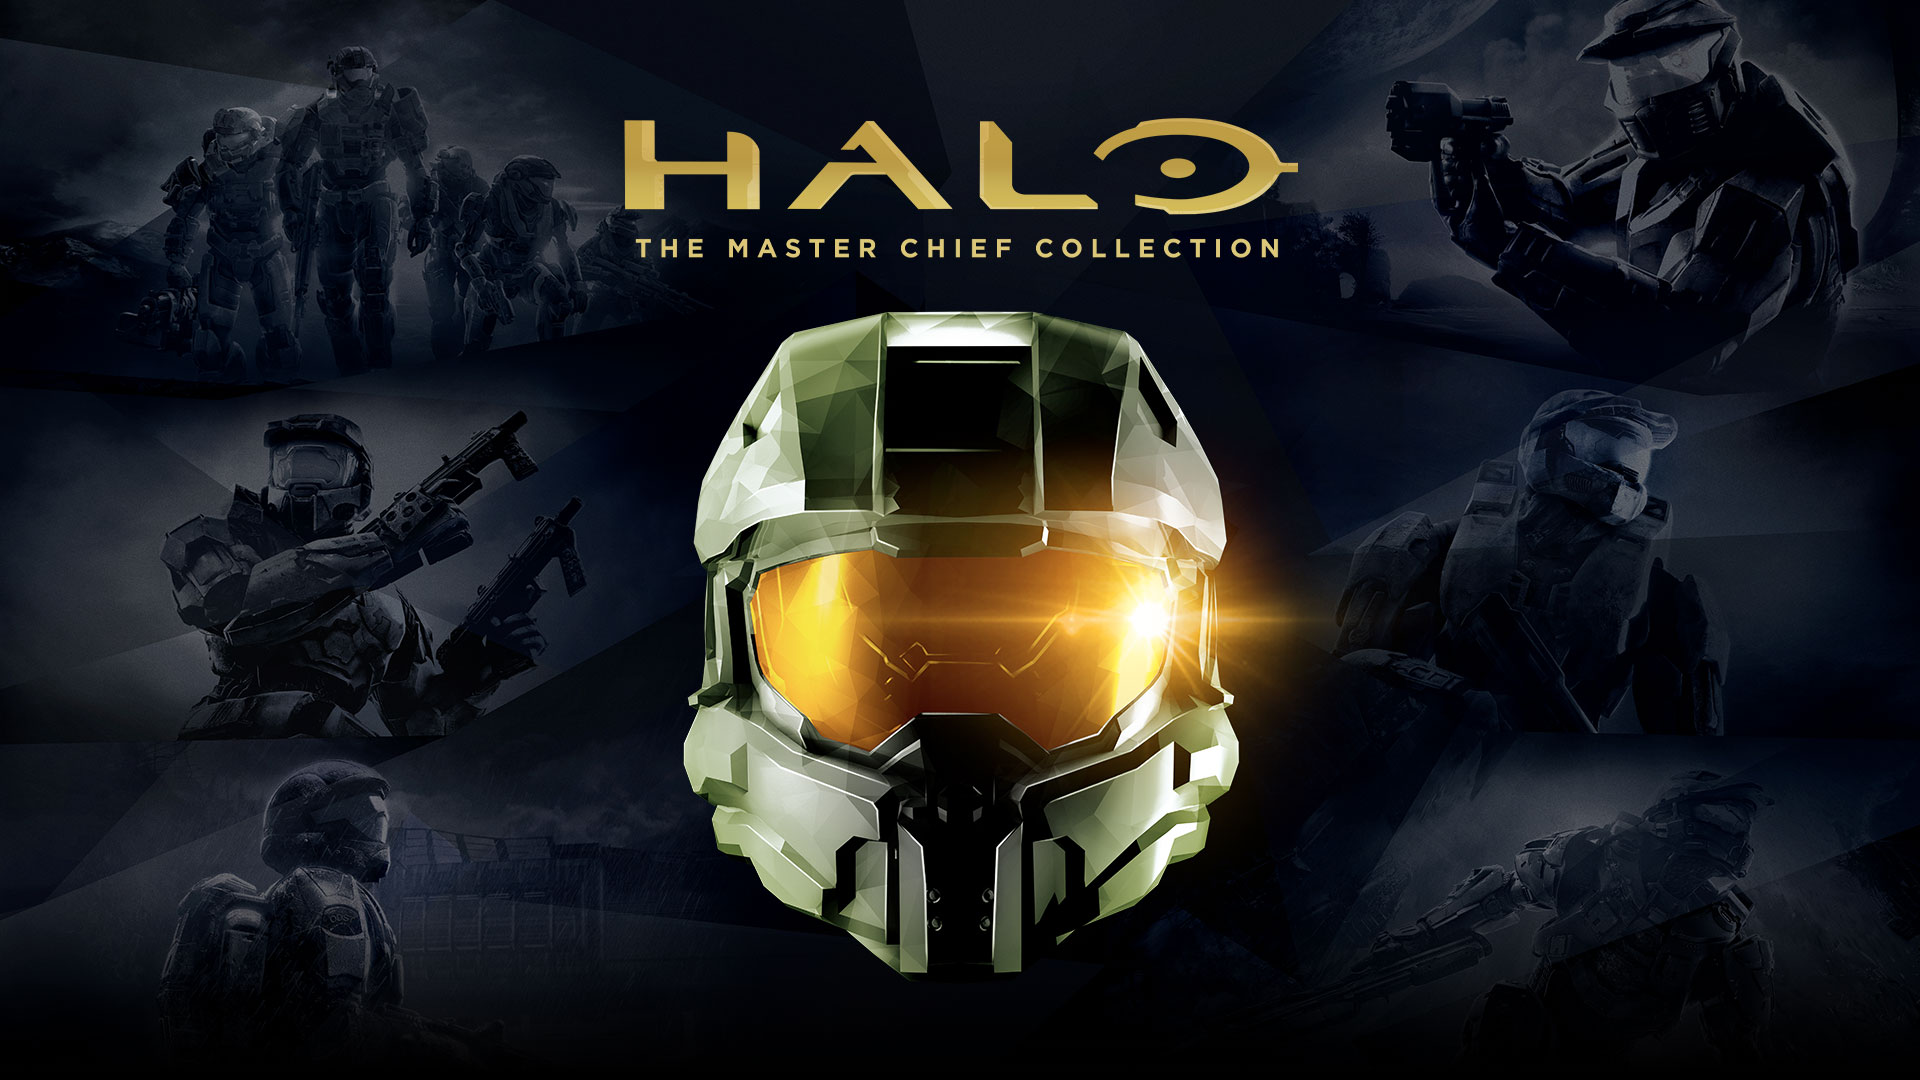 Halo The Master Chief Collection, casco de Master Chief sobre un fondo transparente de imágenes de la caja de Halo